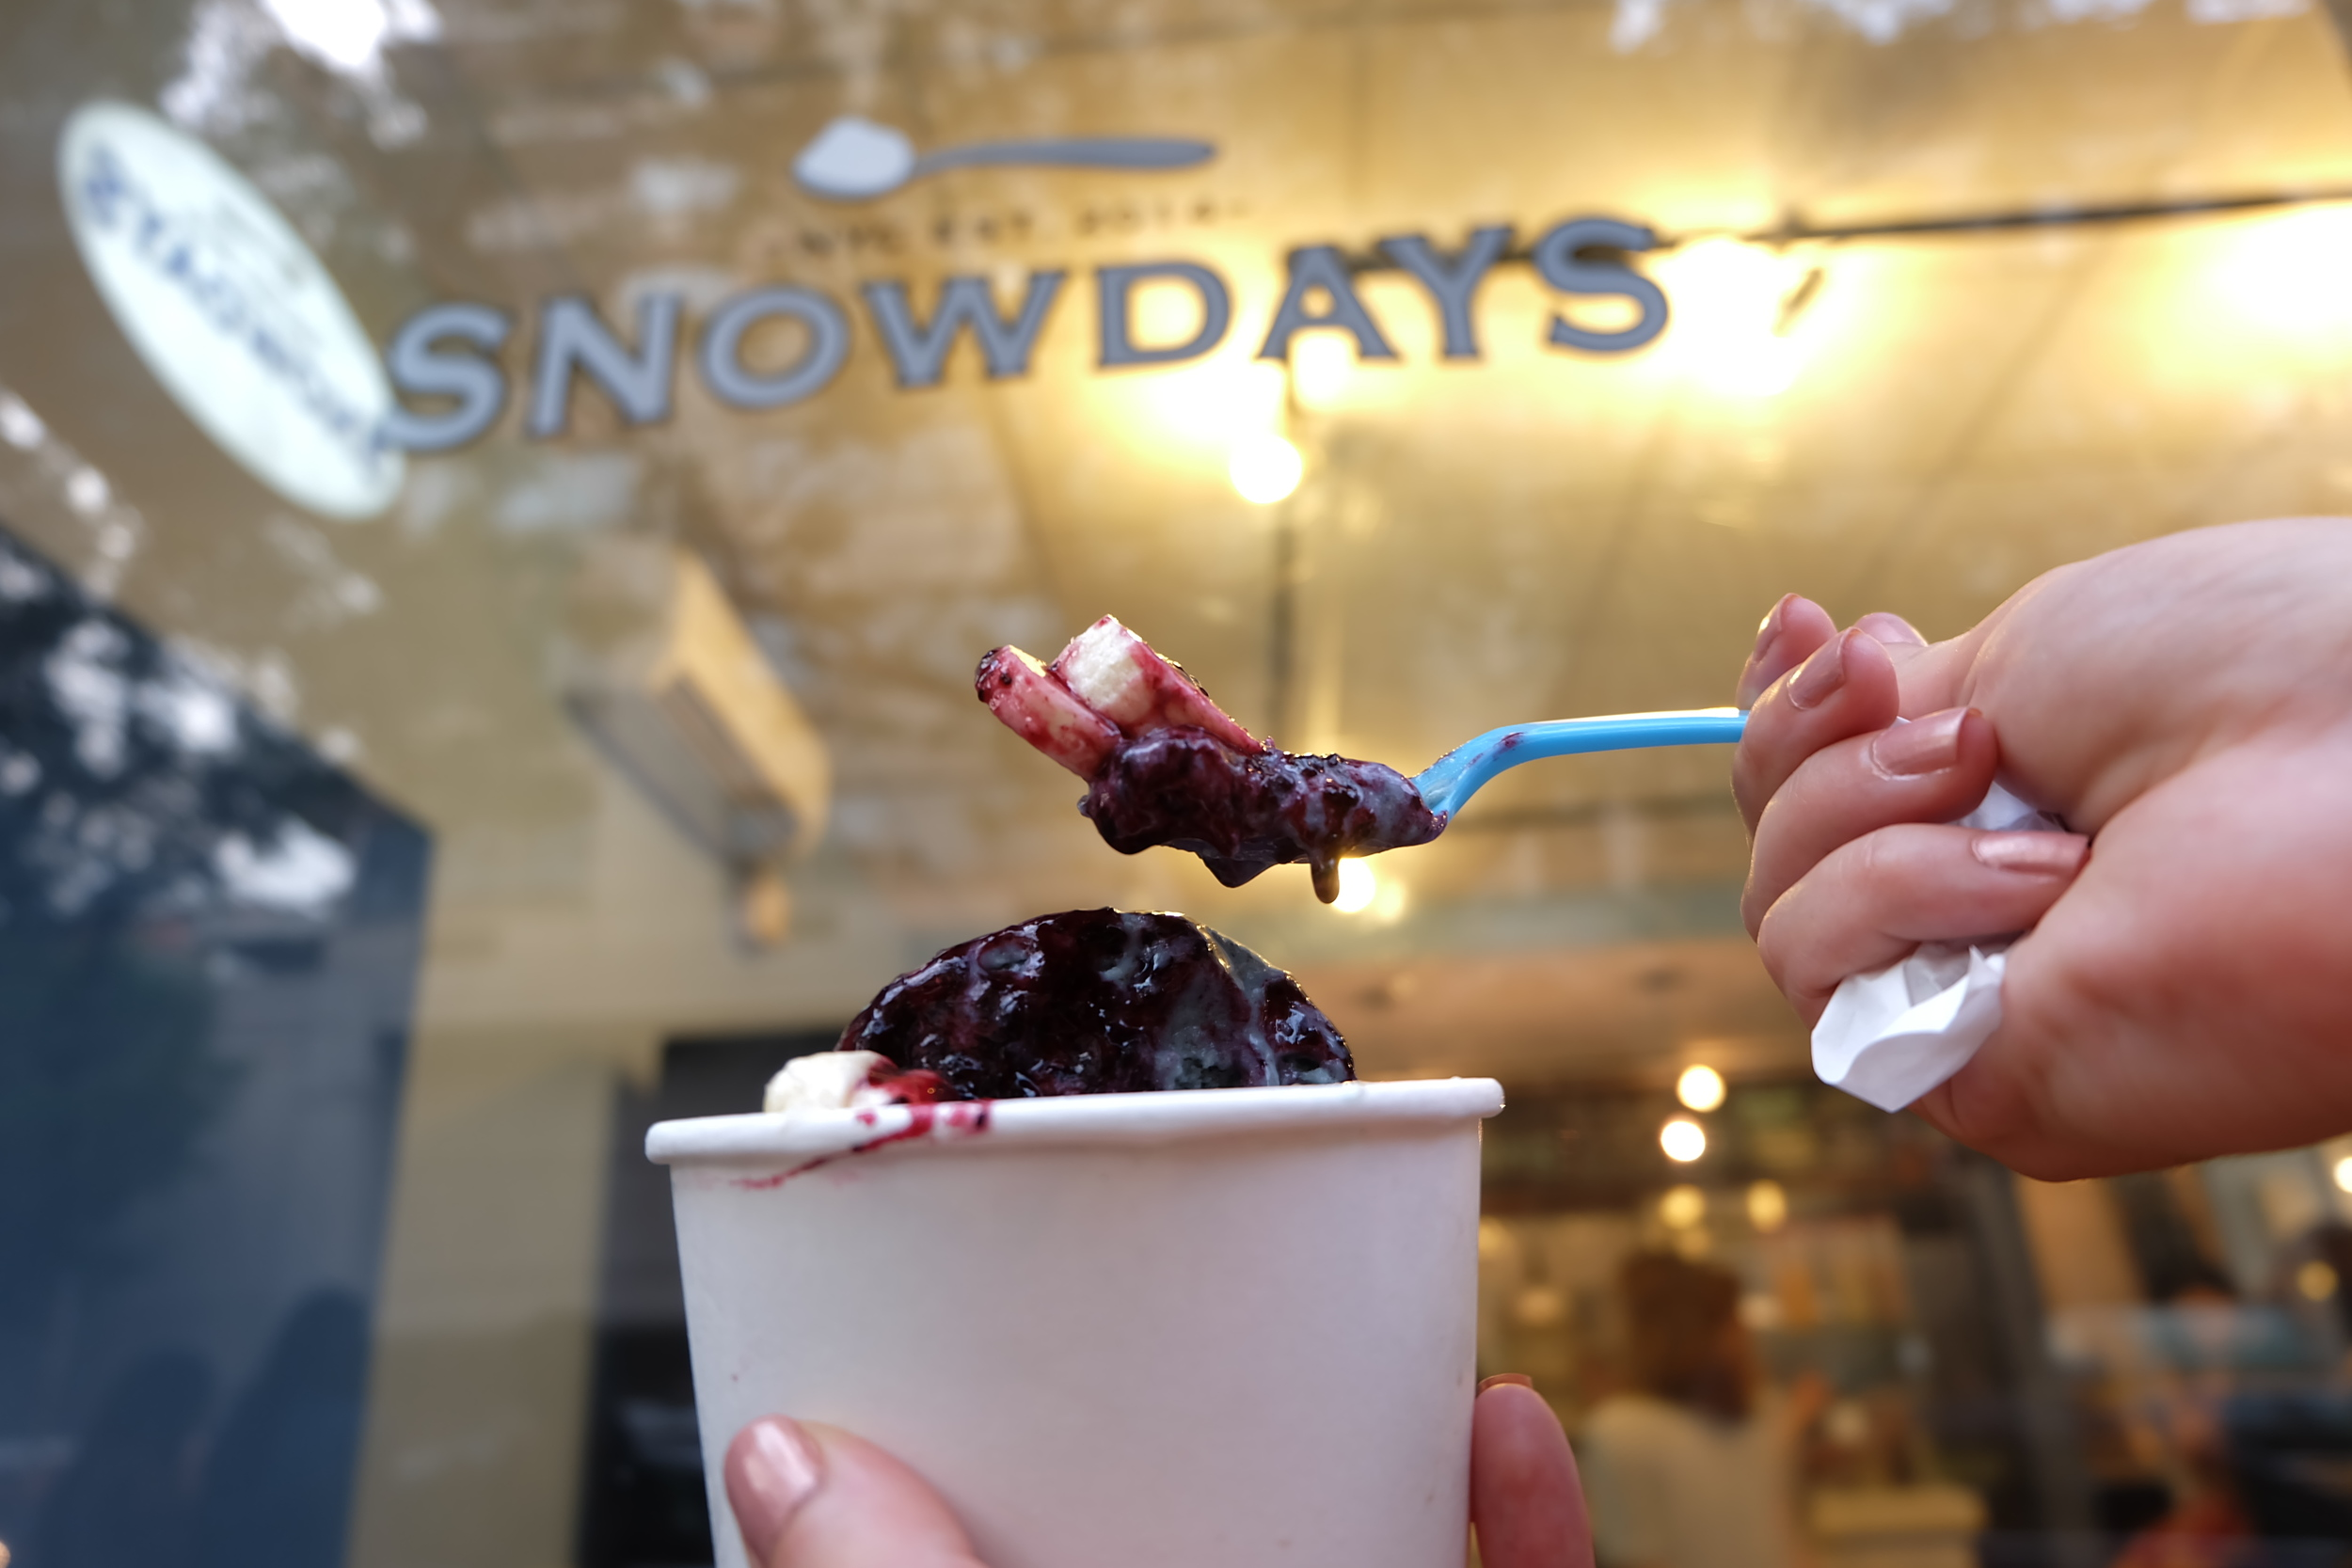 16. Snowdays: Snowdays wasn't on my original list but walking past their shop with the line out the door, I had to stop and try some. This light and airy treat is custom shaved to order, inspired by Taiwanese and Korean shaved ices and comes with a spoon that changes color. The Yeti theme makes the